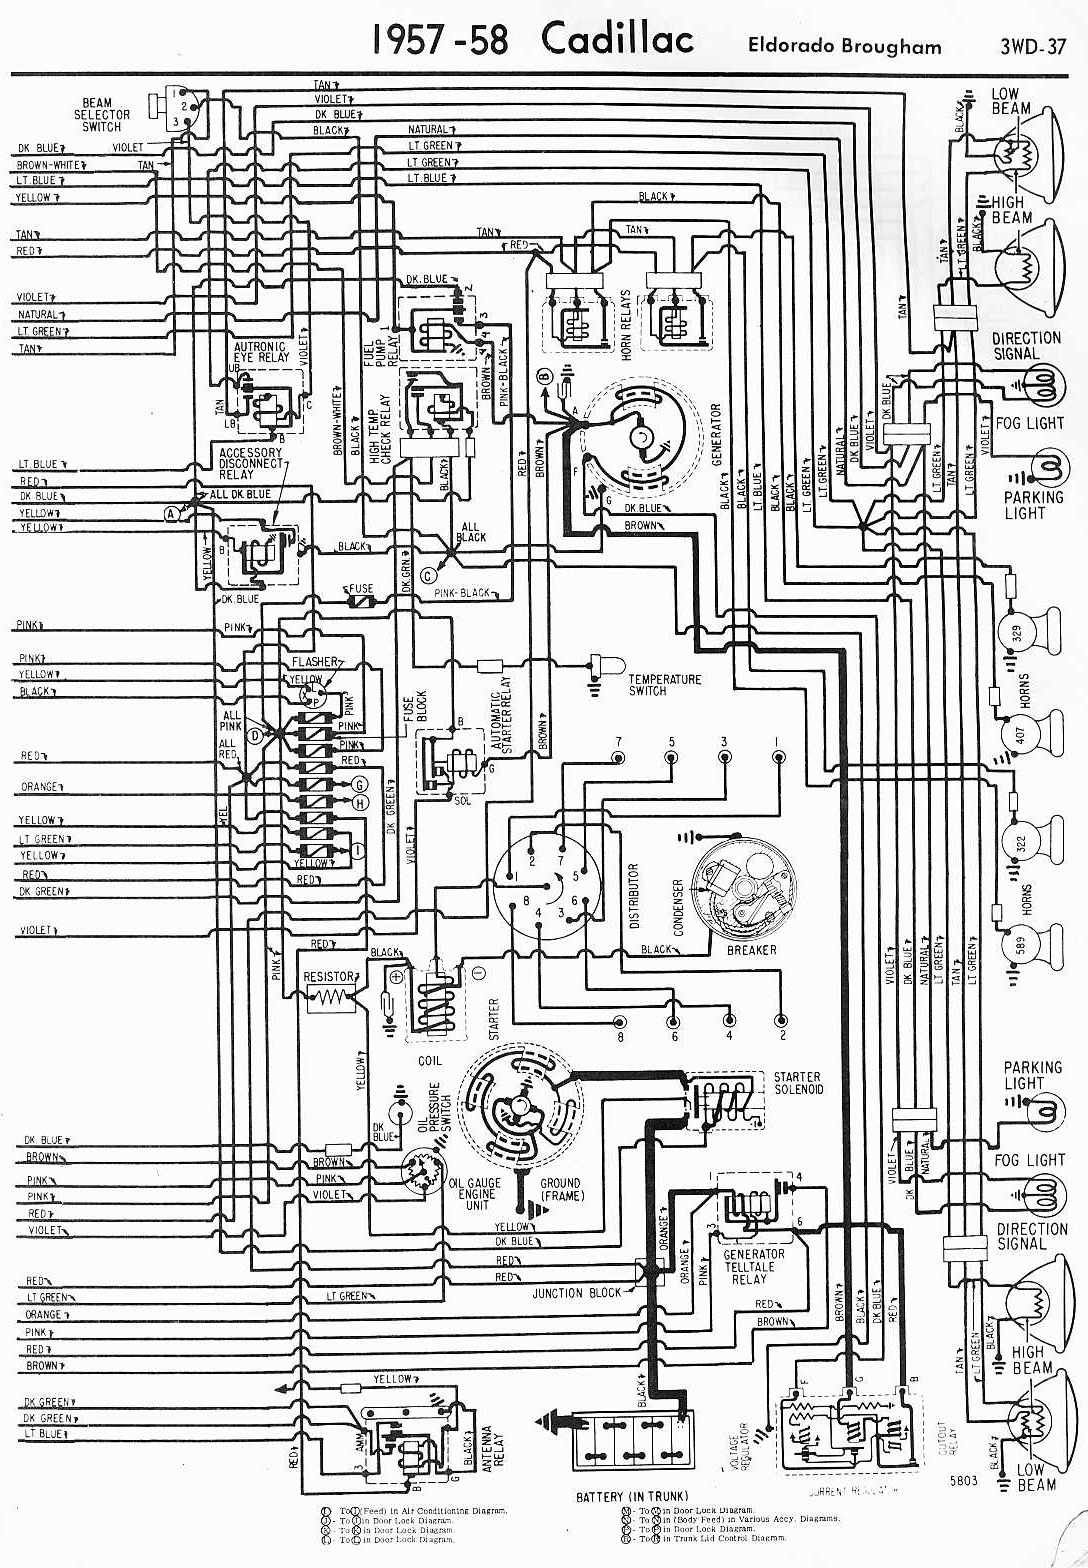 cadillac eldorado fuse diagram example electrical wiring diagram u2022 rh huntervalleyhotels co